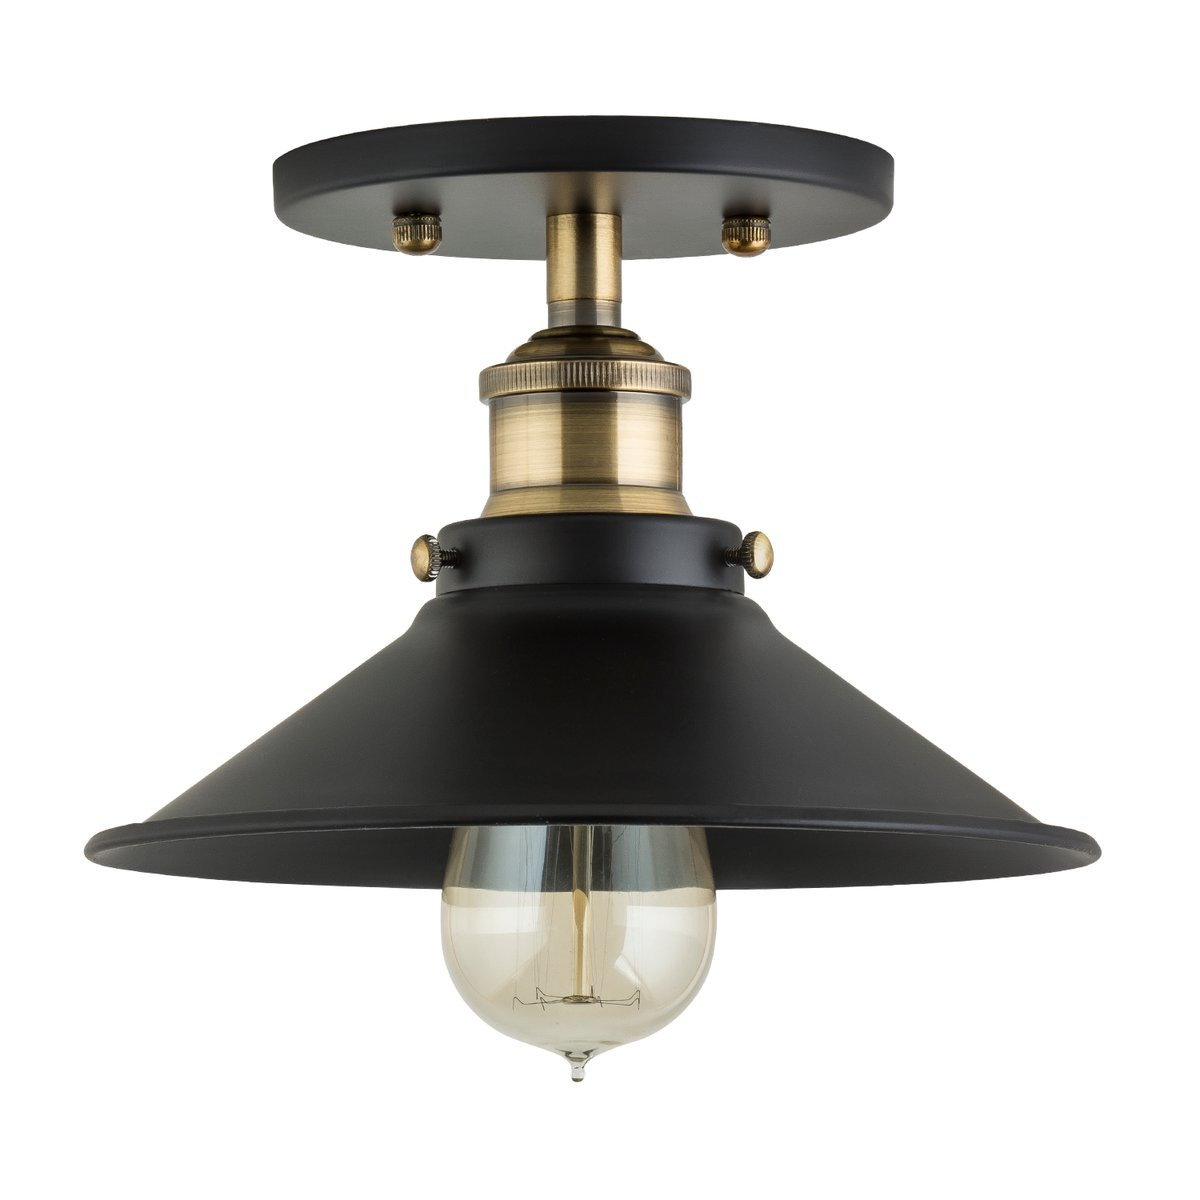 Andante LED Industrial Ceiling Light Fixture - Antique Brass - Linea di Liara LL-C407-LED-AB